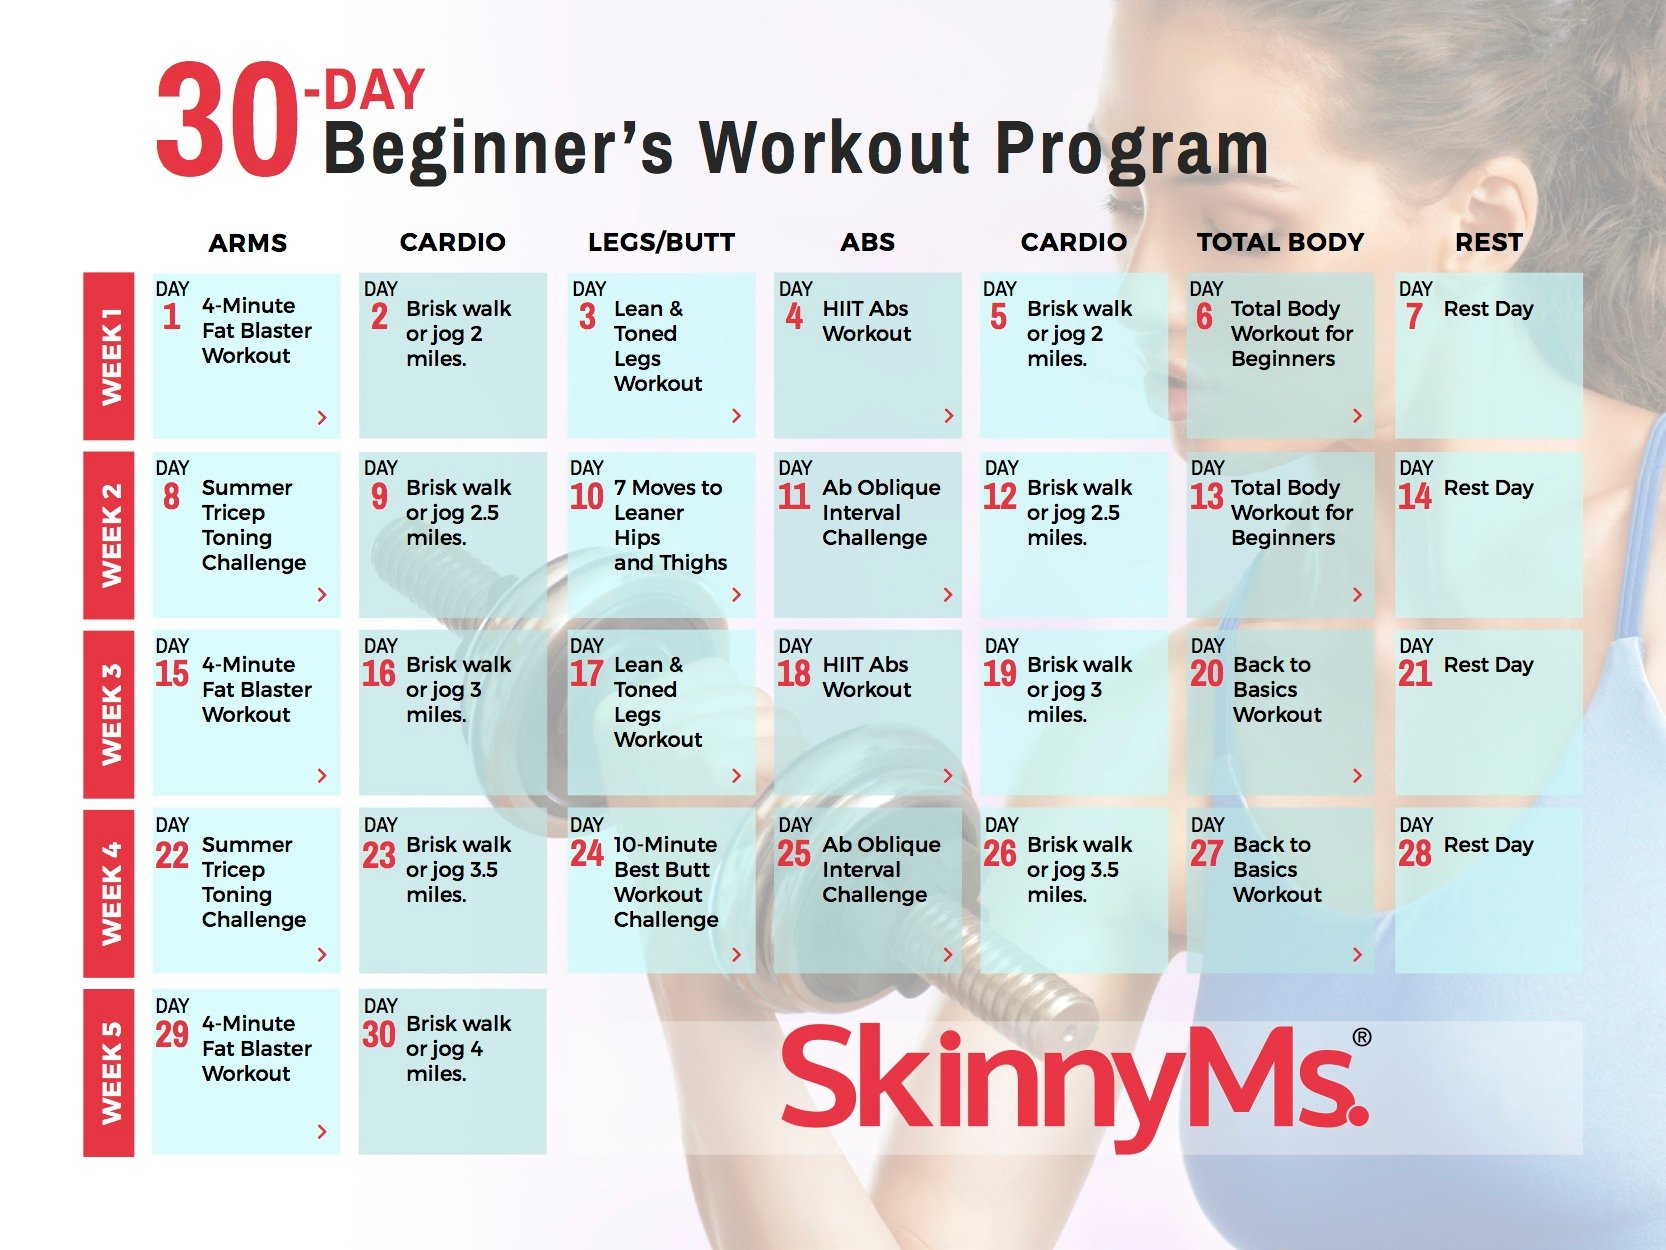 30 Day Beginners Workout Calendar